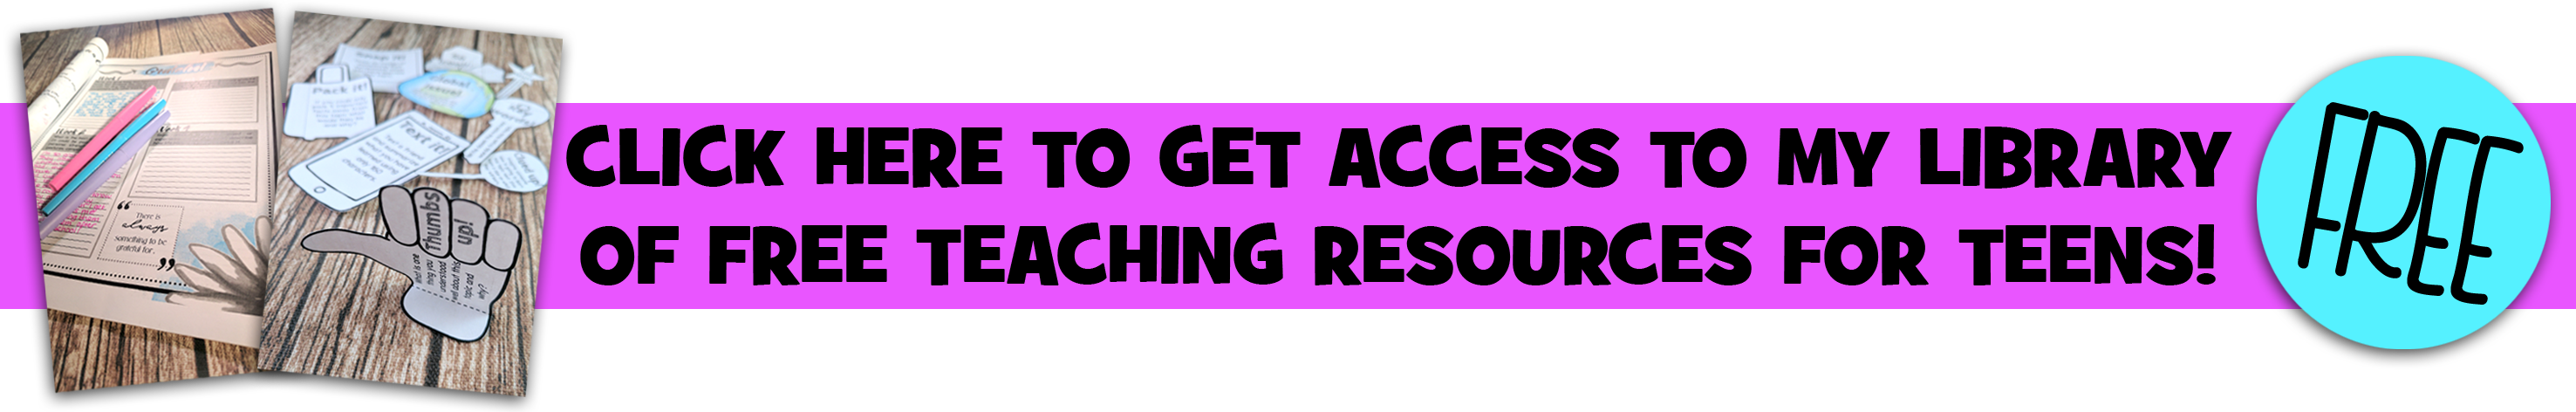 Free teaching resources for teens! @resourceforce